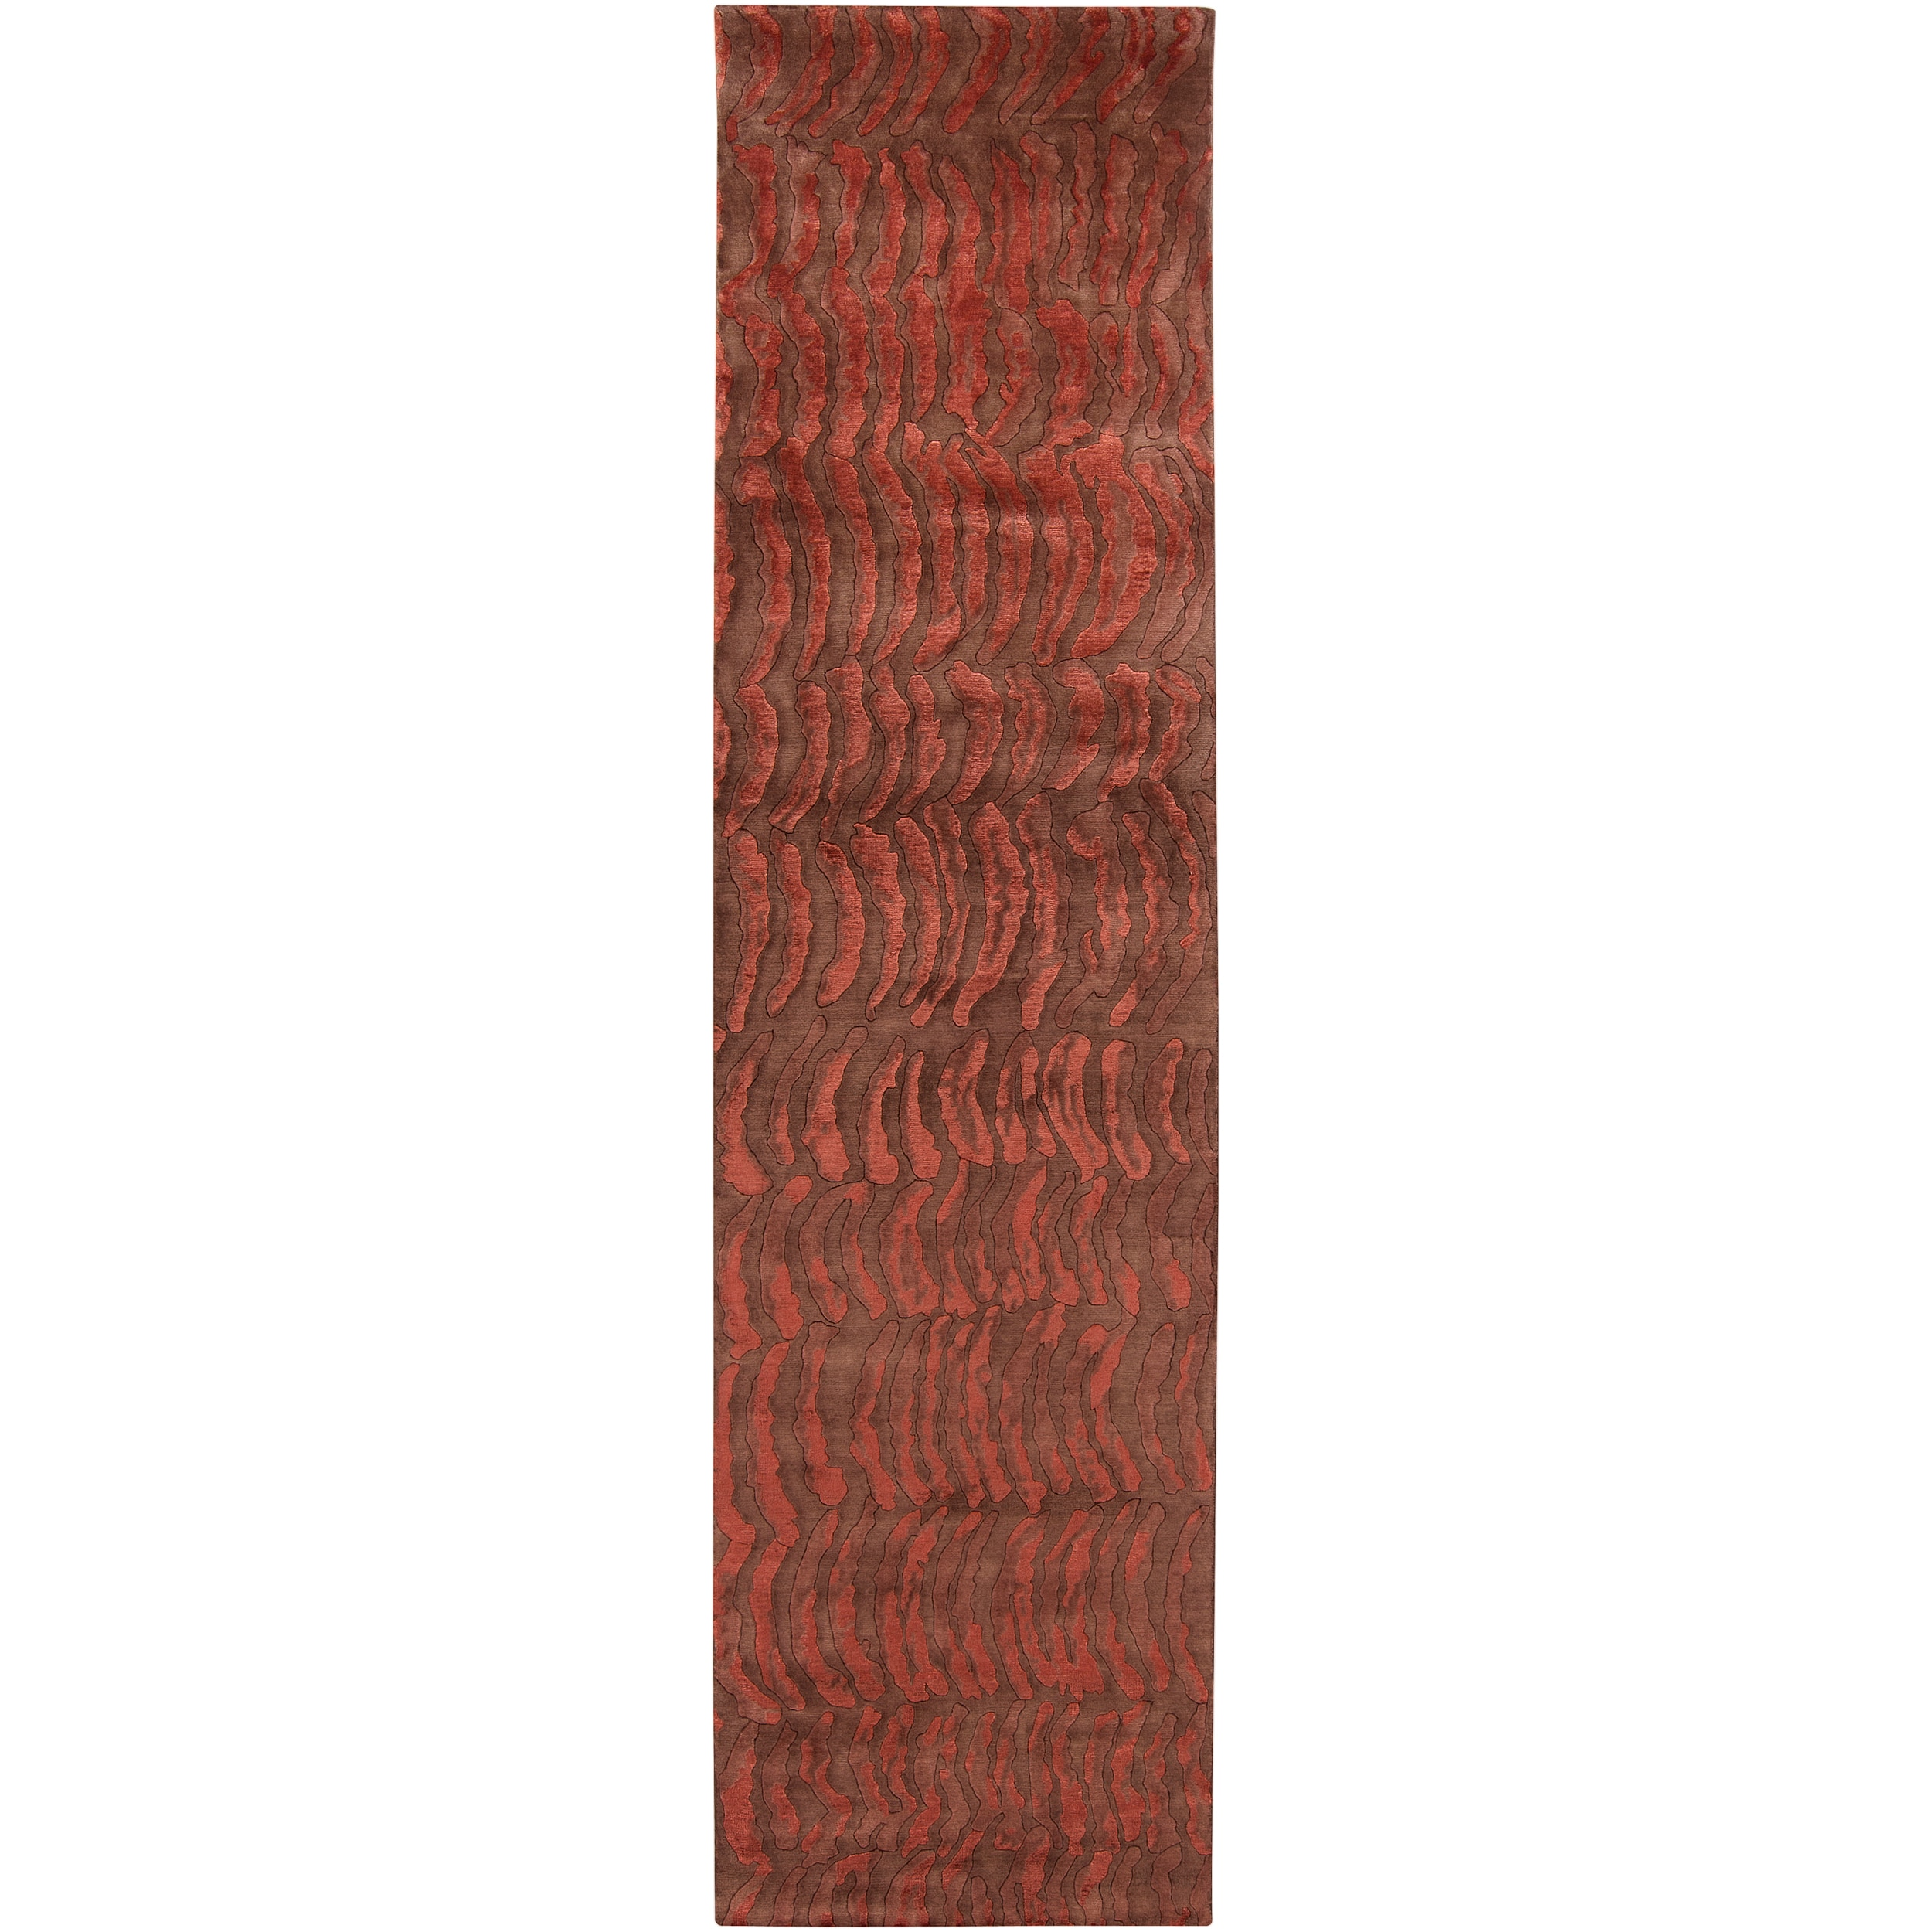 Contemporary Hand-knotted Multicolored Vilas Abstract Design Wool Rug (2 '6 x 10')